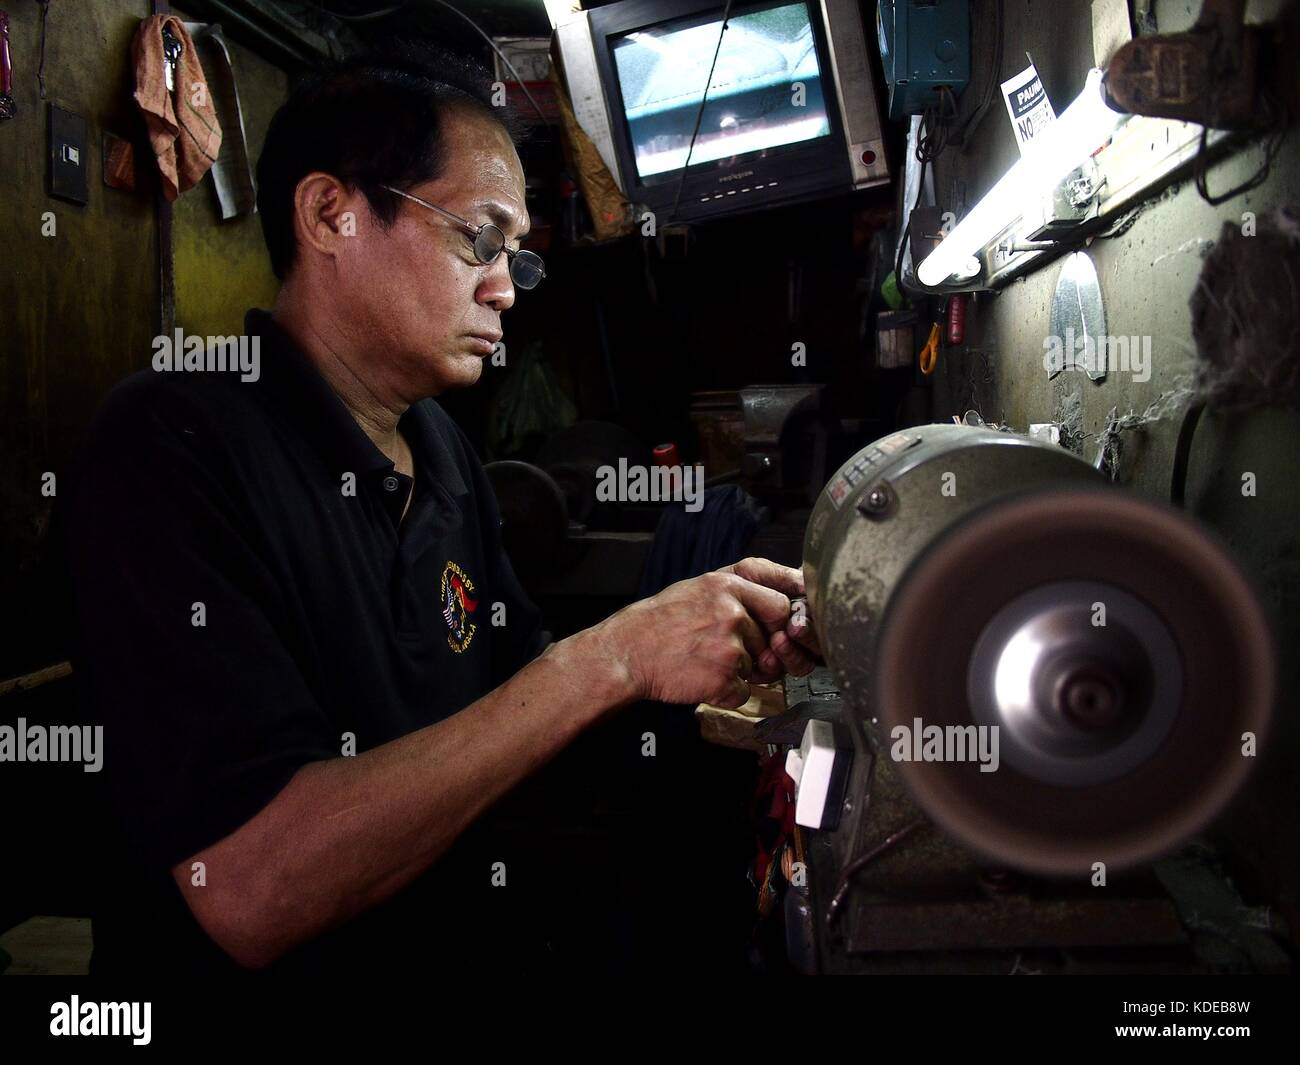 ANTIPOLO CITY, PHILIPPINES - OCTOBER 12, 2017: A worker sharpens a nipper for a customer at his makeshift stall - Stock Image